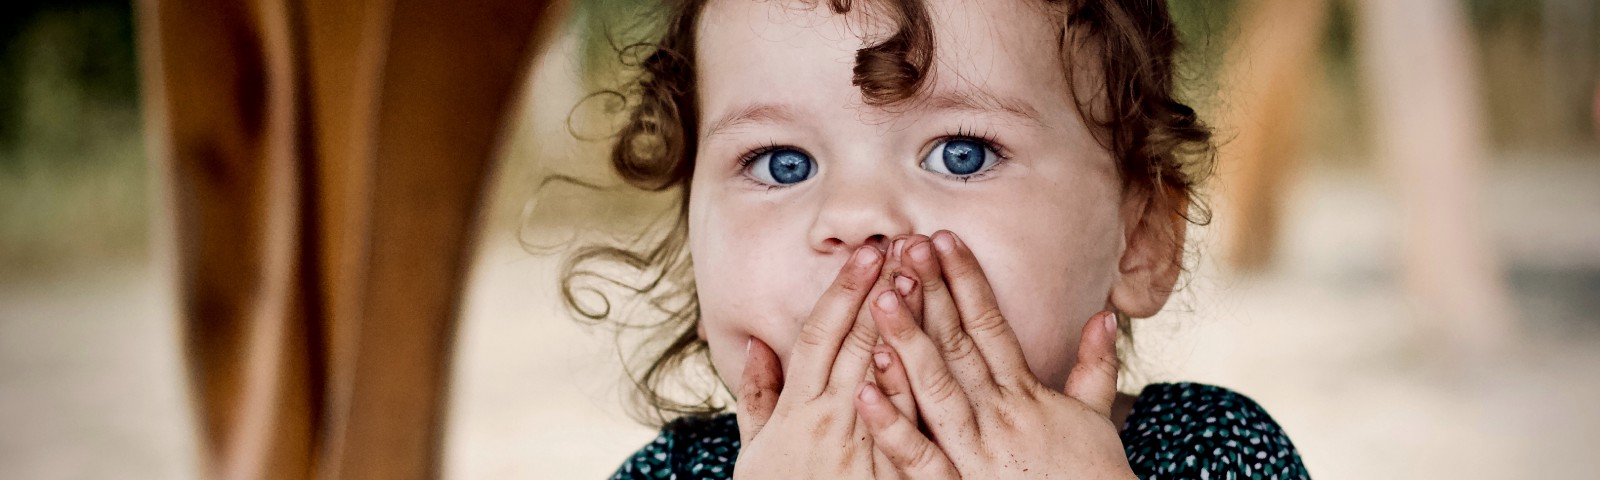 A little girl covering her mouth with her two hands.